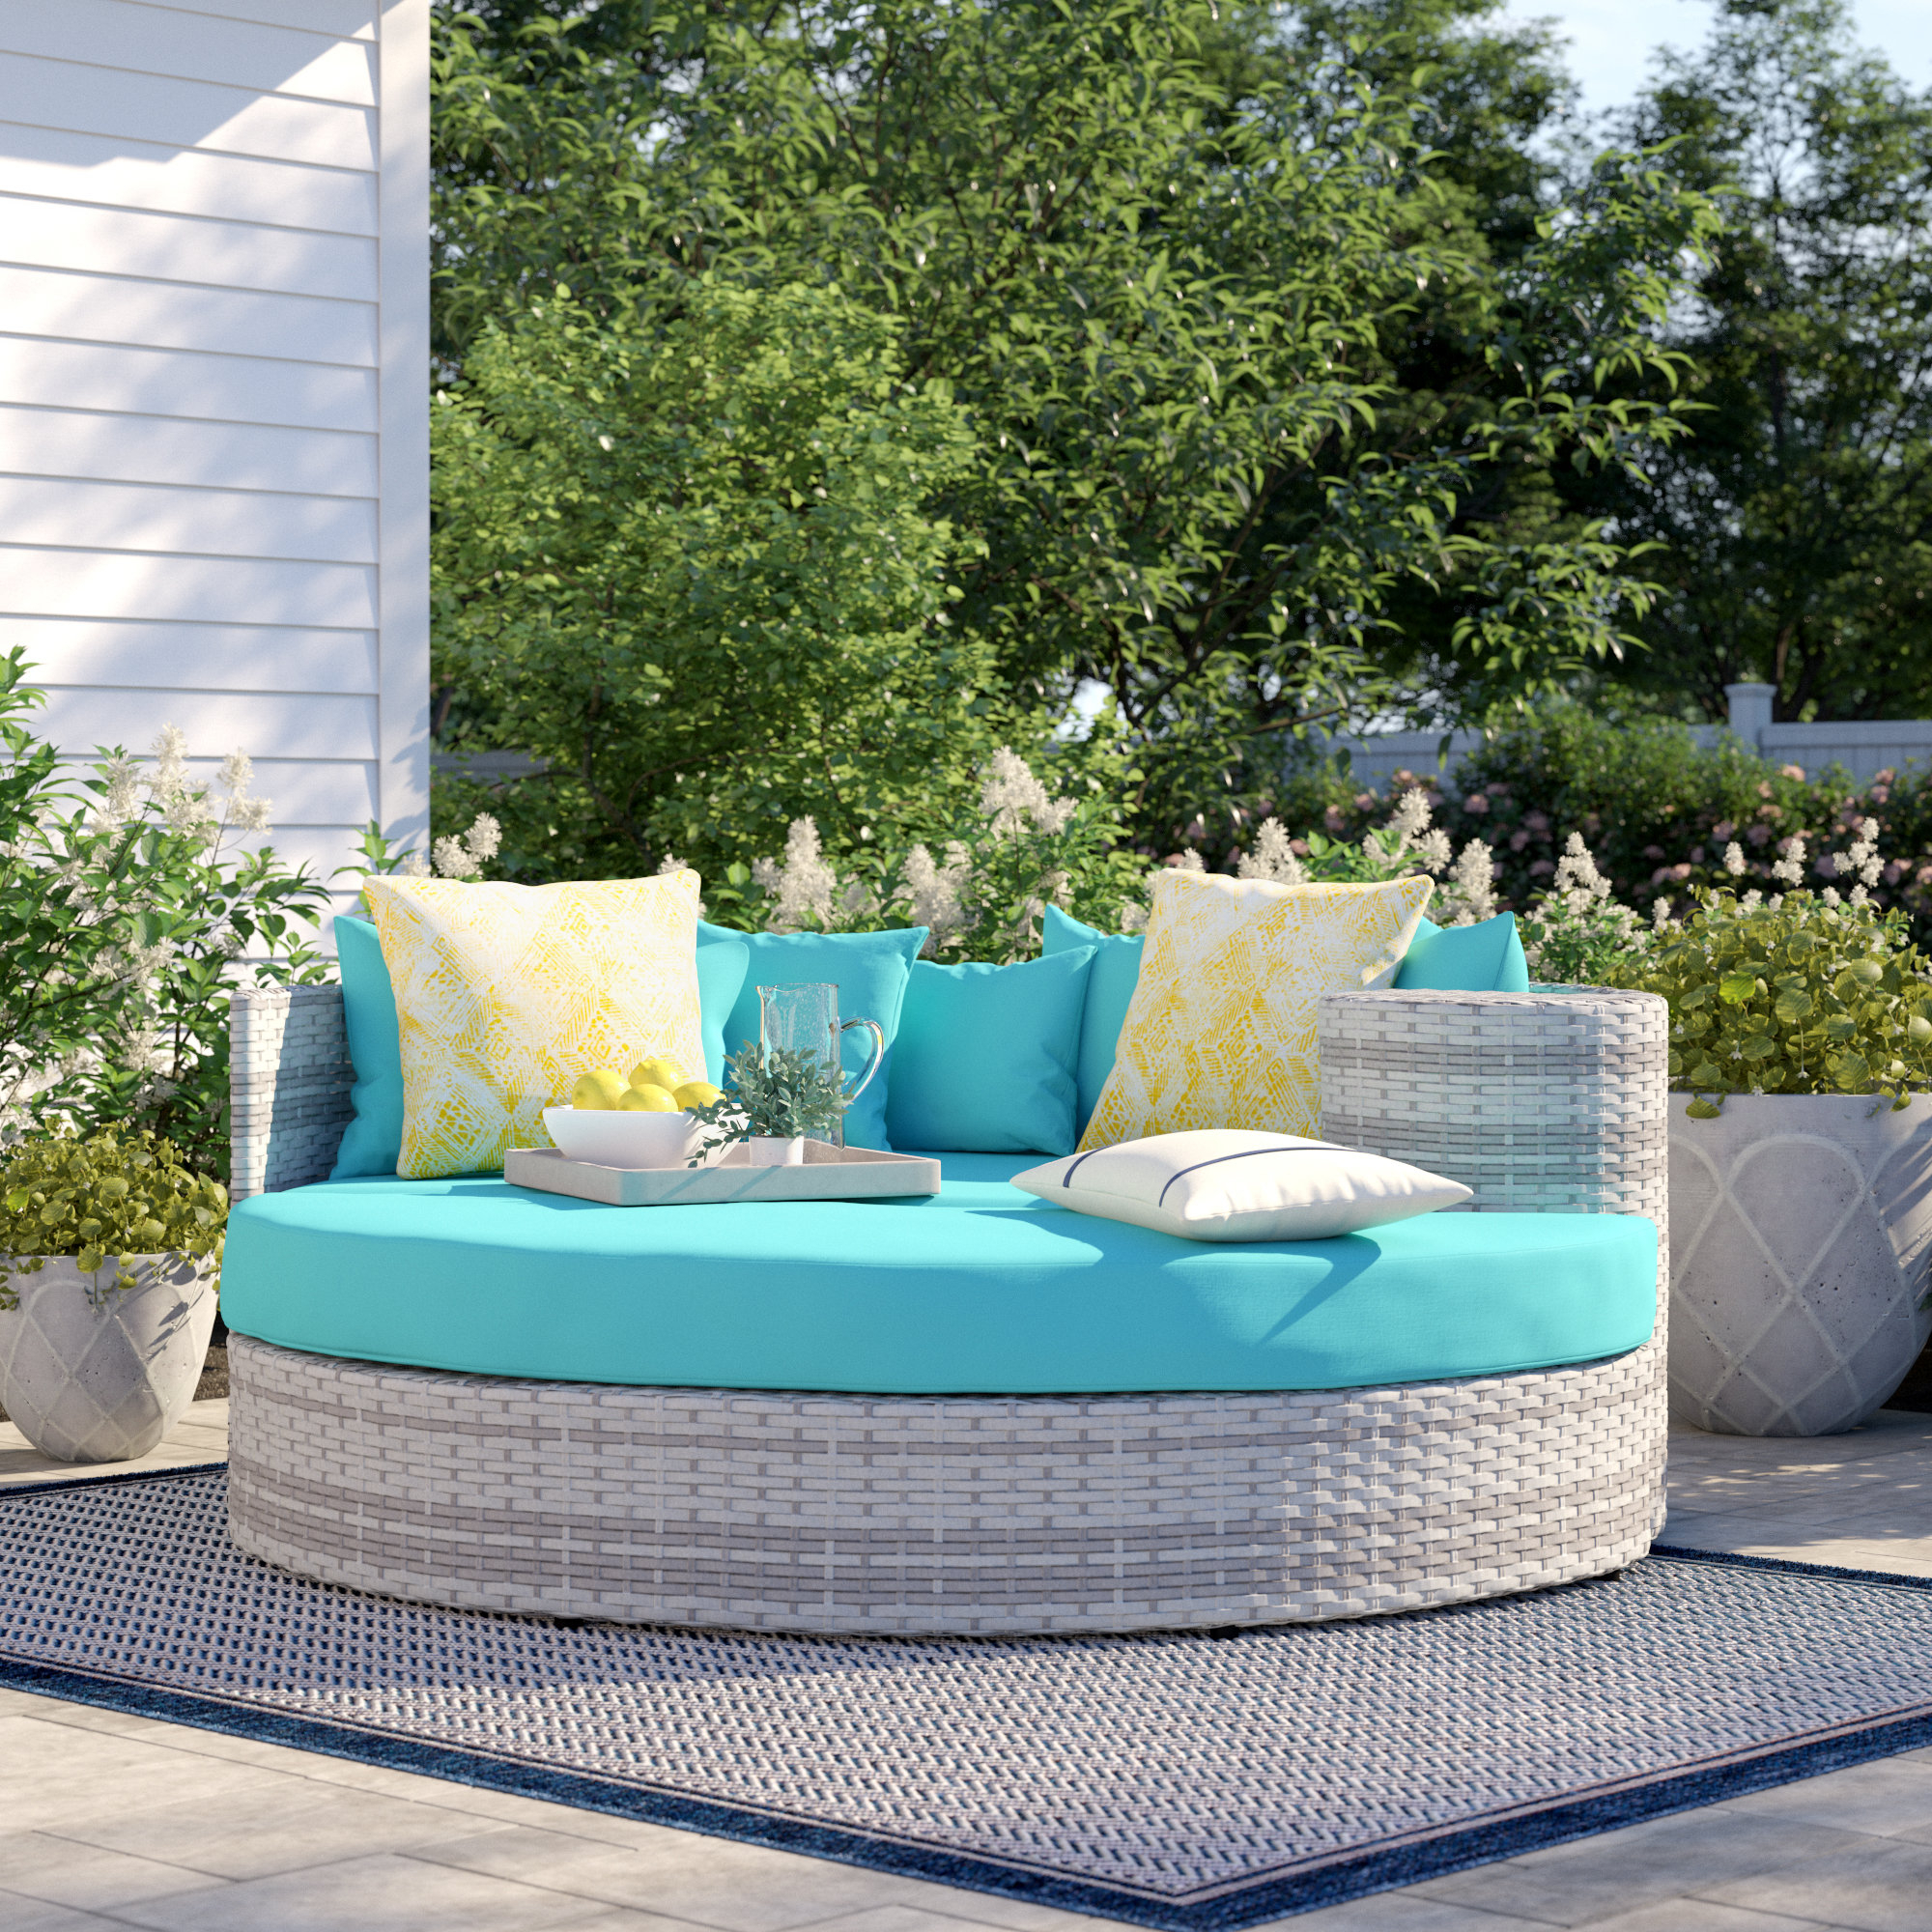 2019 Lit De Jour De Patio Avec Coussins Falmouth Throughout Keiran Patio Daybeds With Cushions (View 11 of 20)